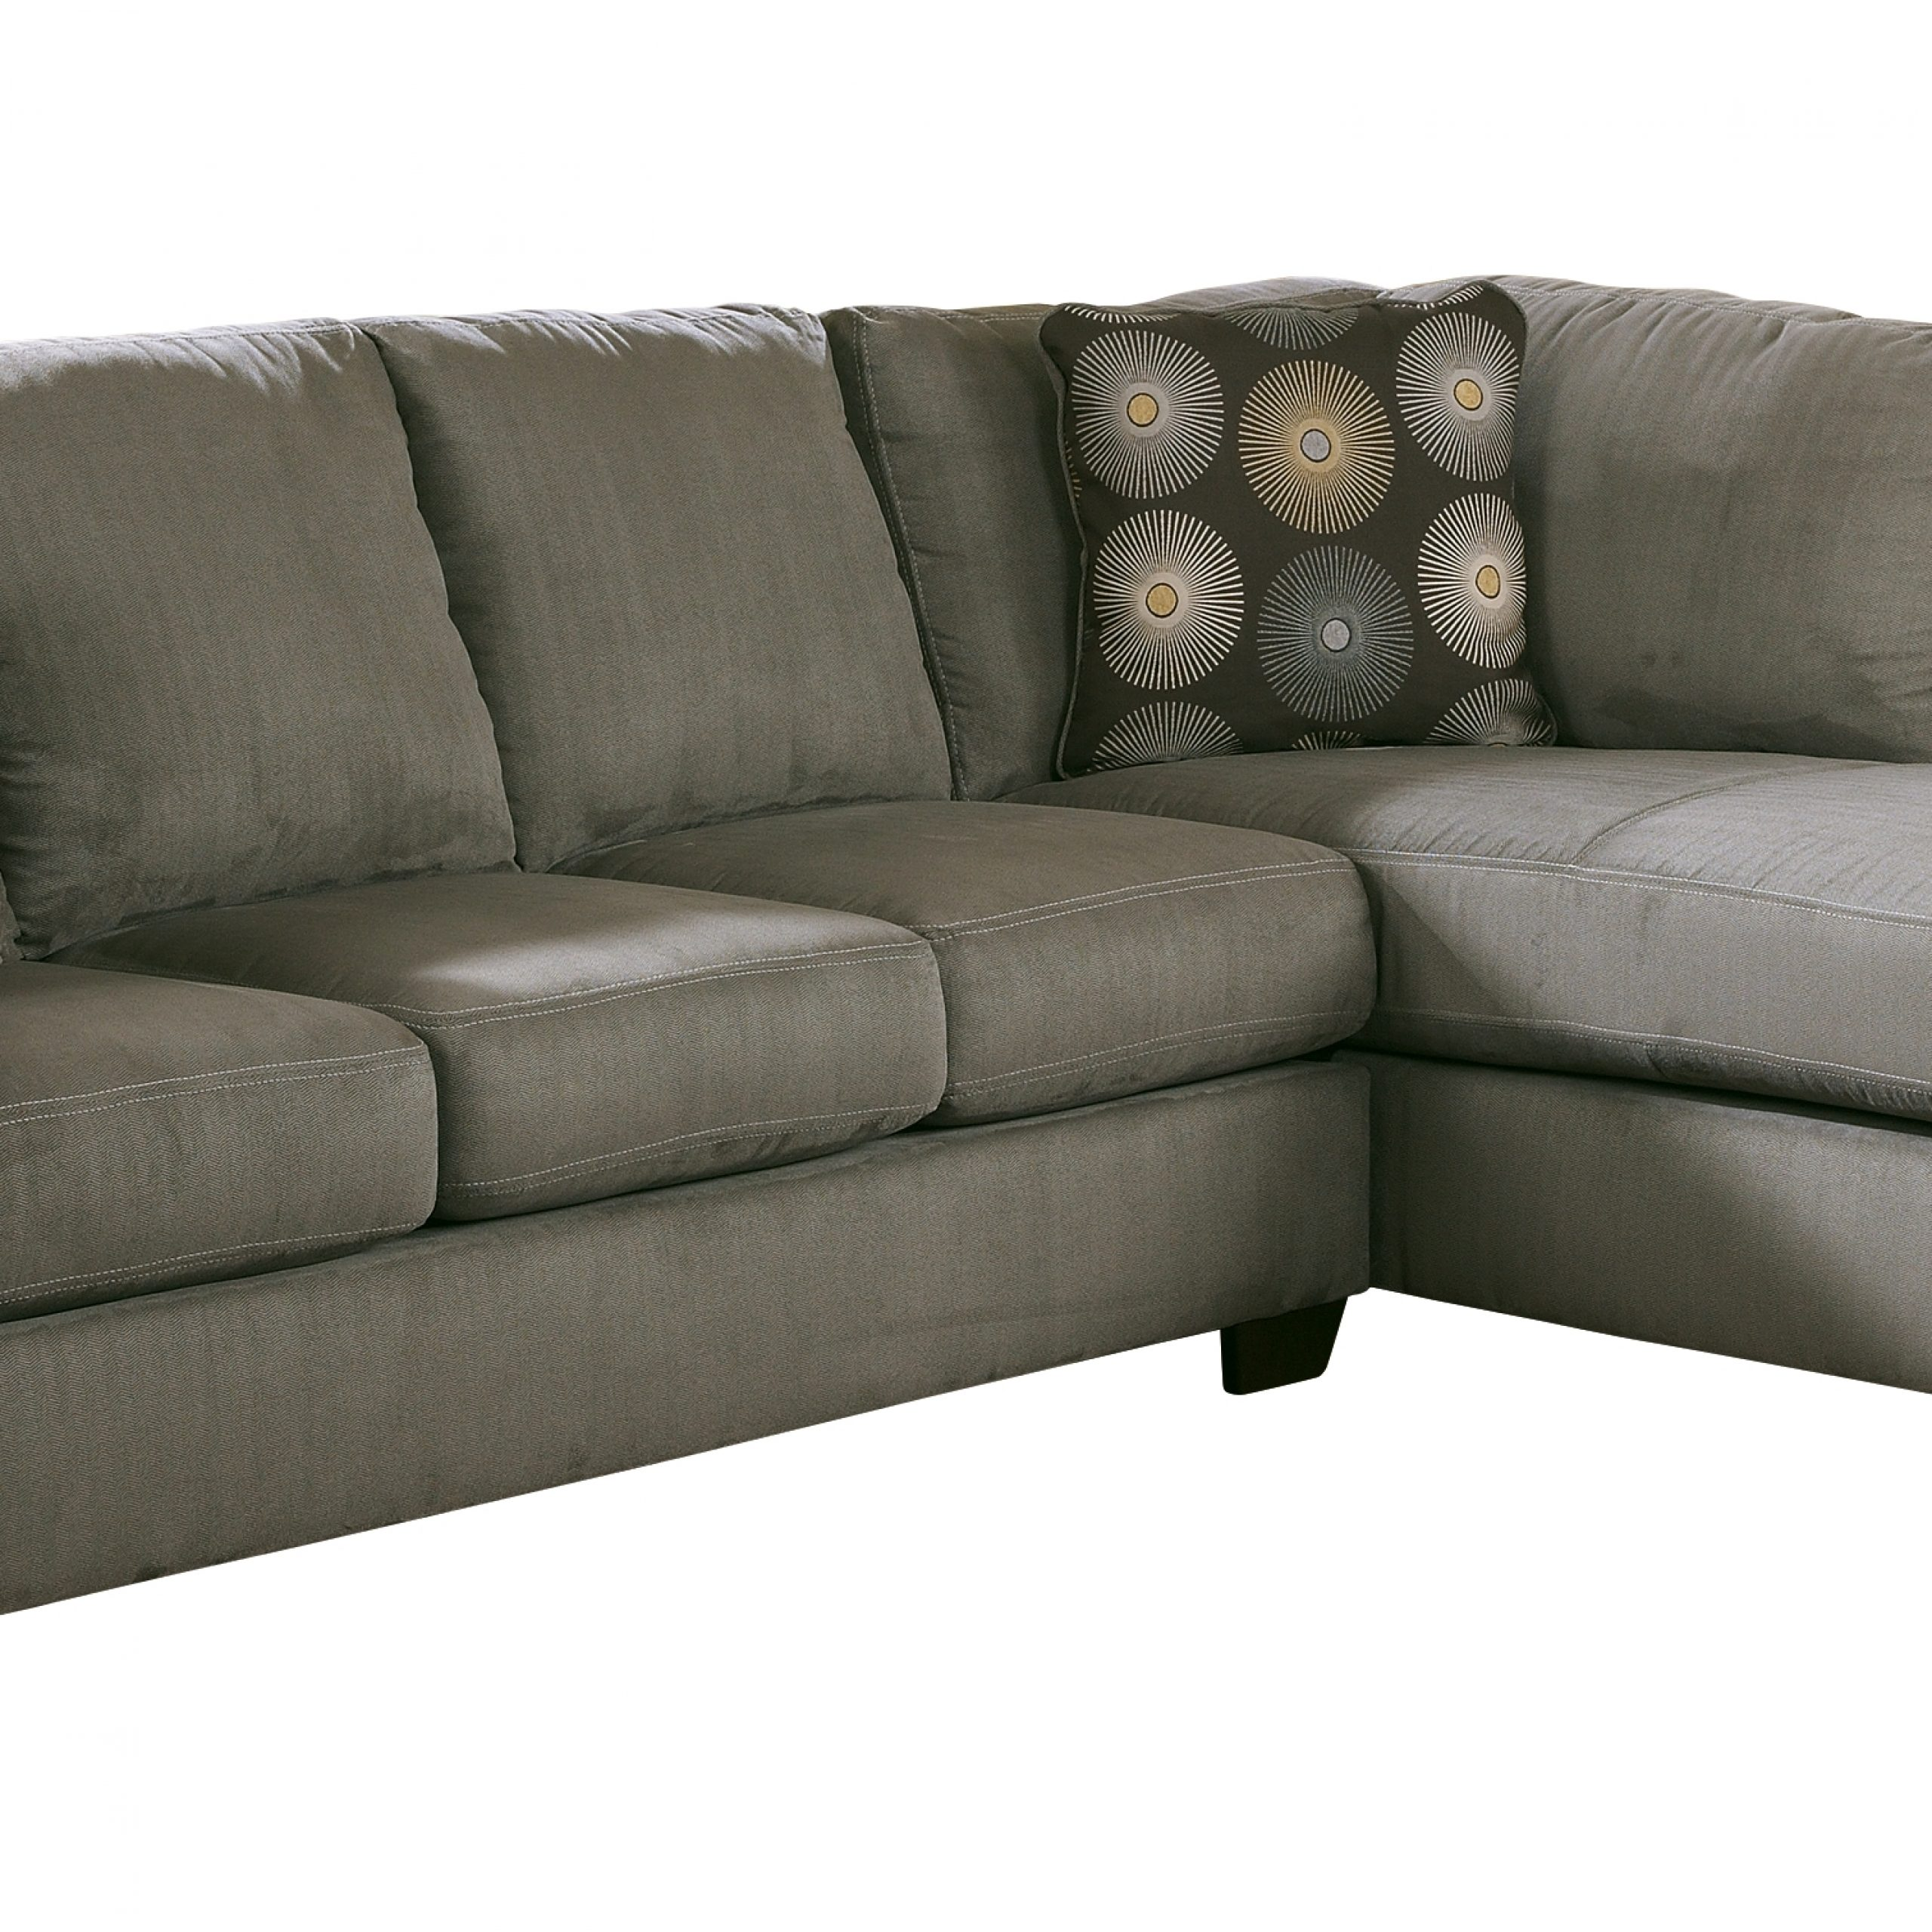 Most Recently Released Zella 2 Piece Sectional With Chaisesignature Design Throughout 2Pc Burland Contemporary Chaise Sectional Sofas (View 17 of 25)